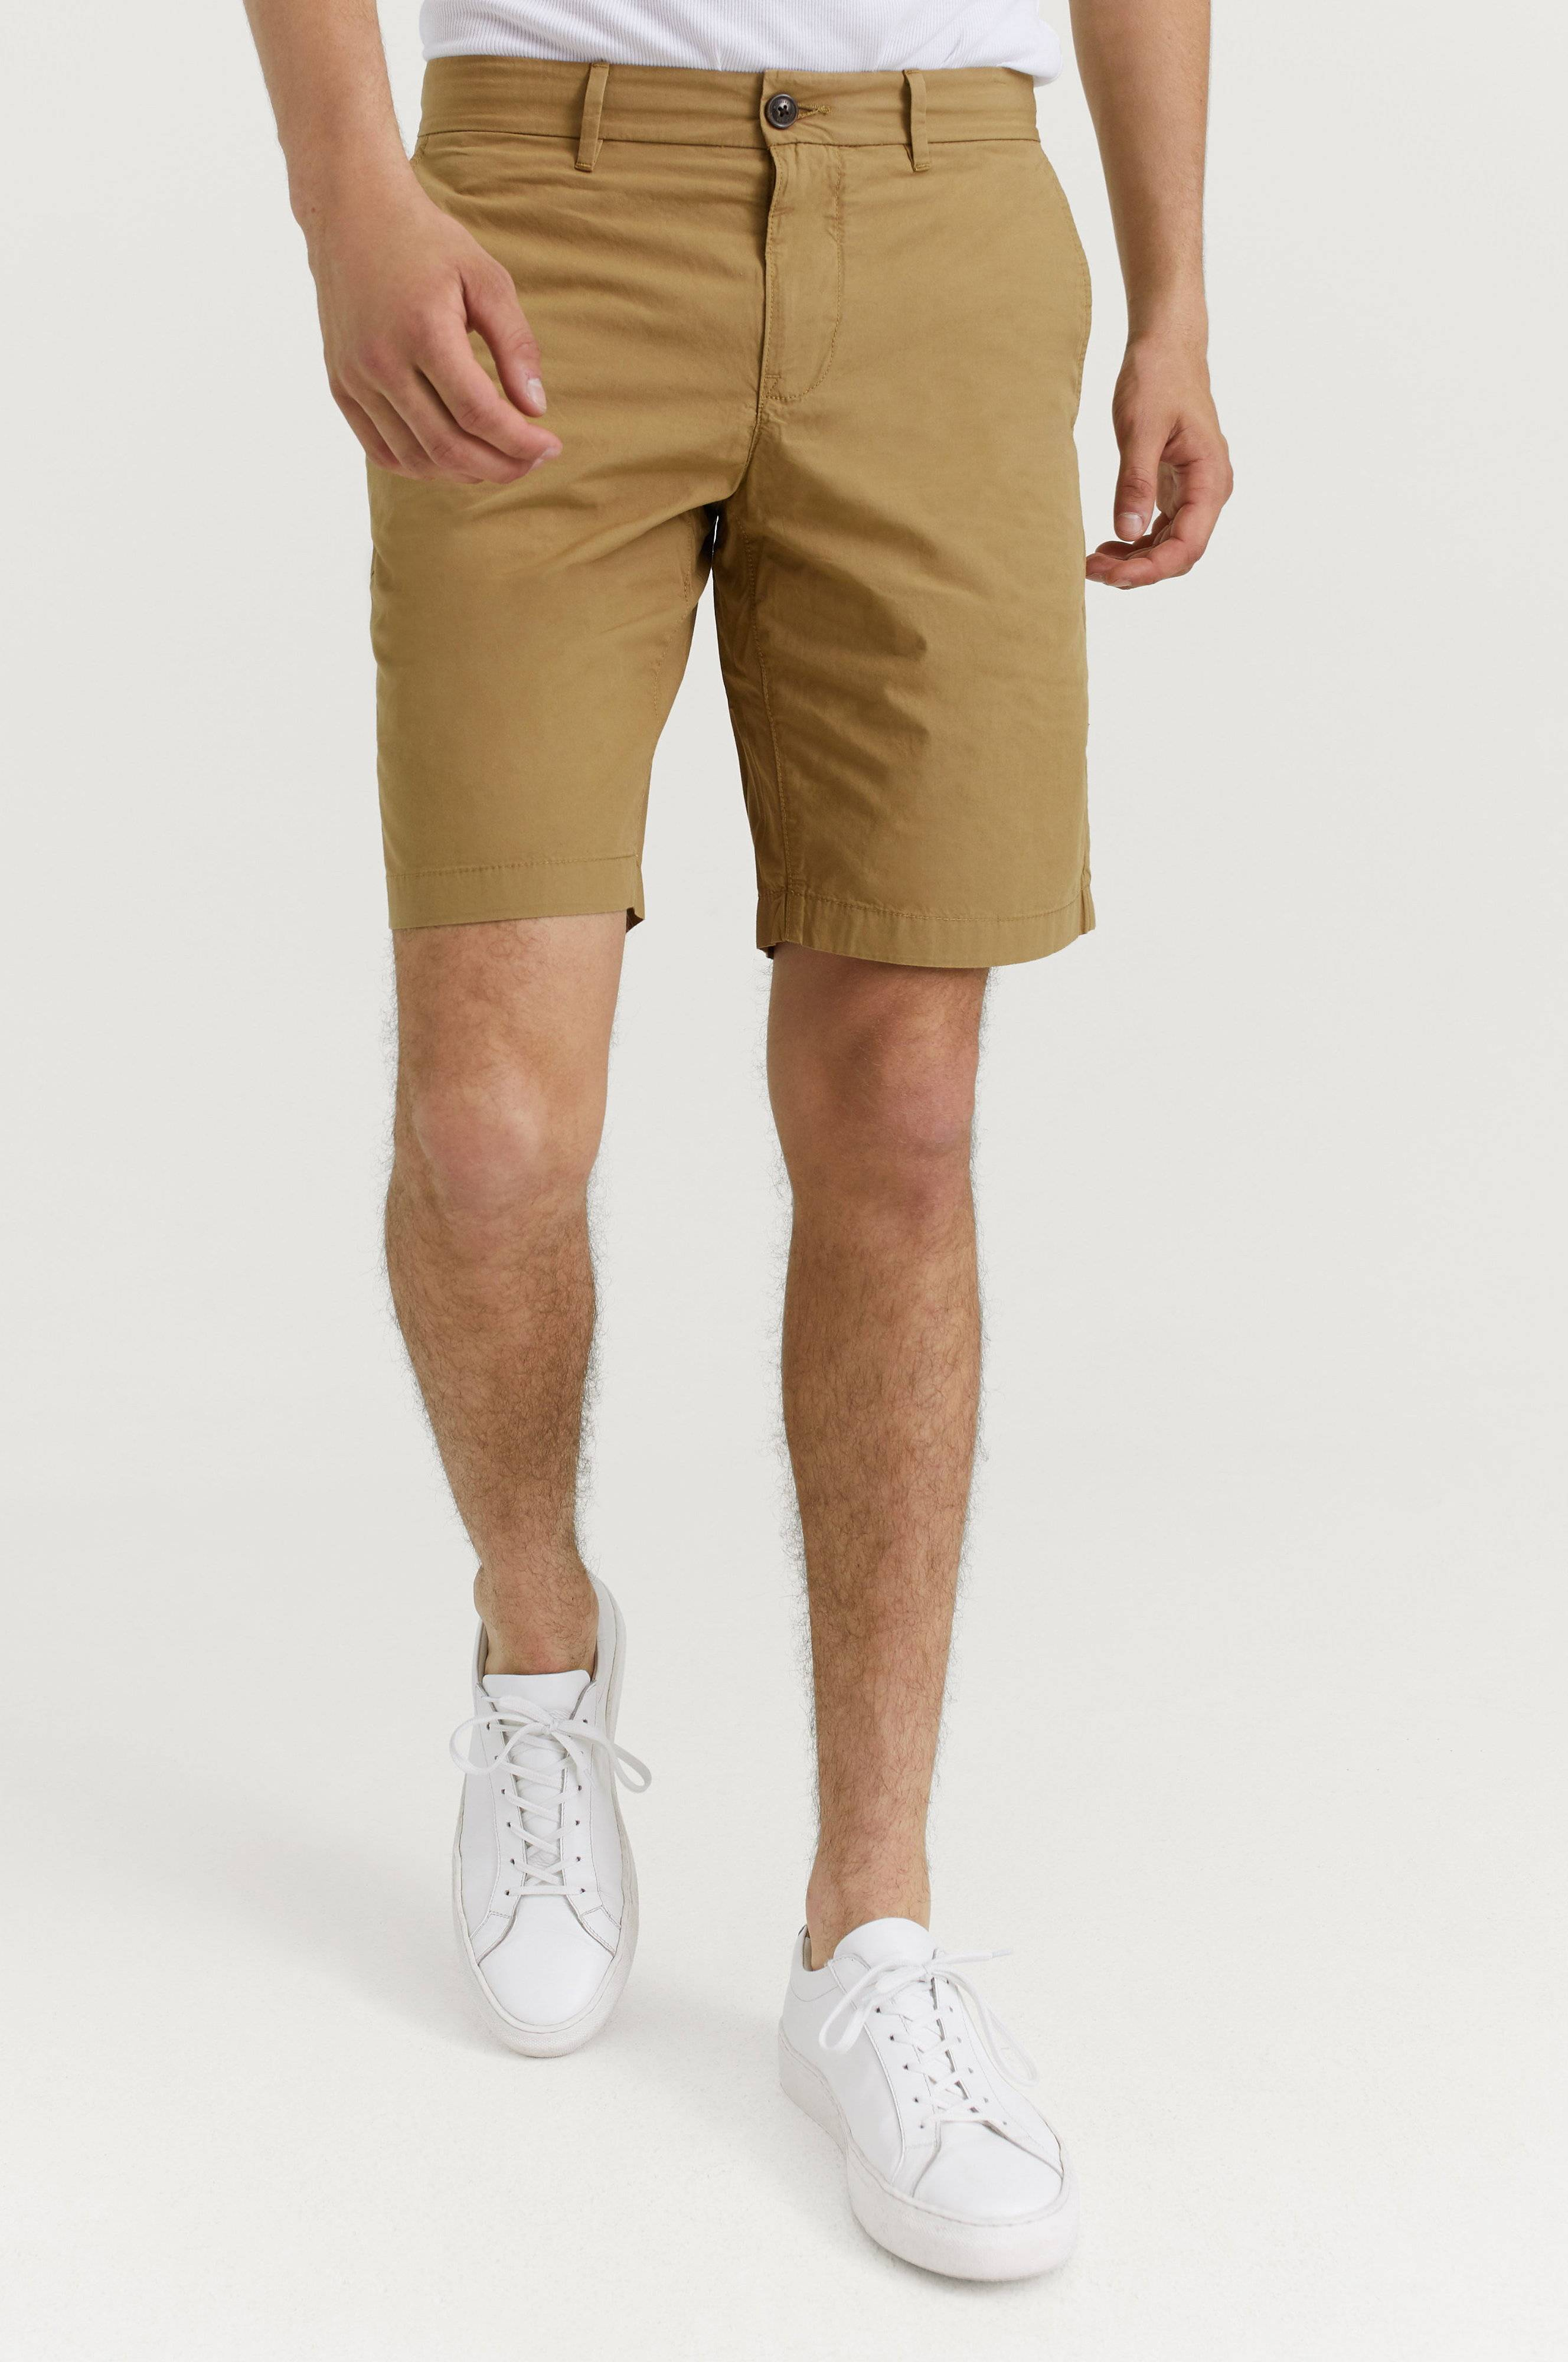 Tommy Hilfiger Brooklyn Short Light Twill Shorts Khaki